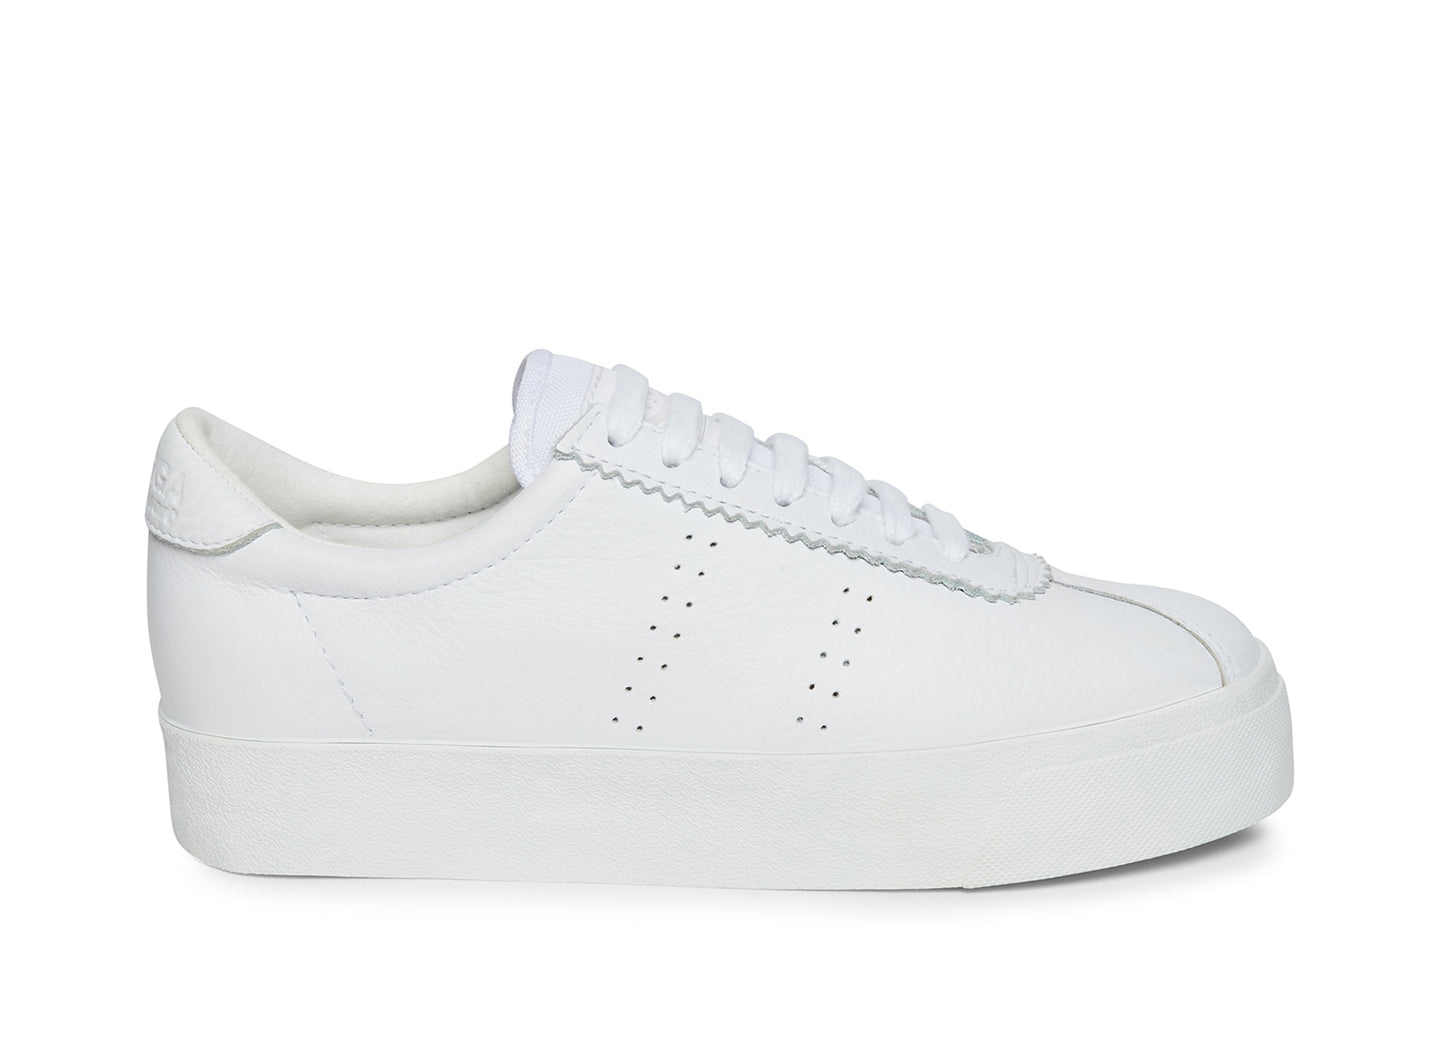 2854 - CLUB 3 FULL COMFORT LEATHER WHITE FABRIC - Women's